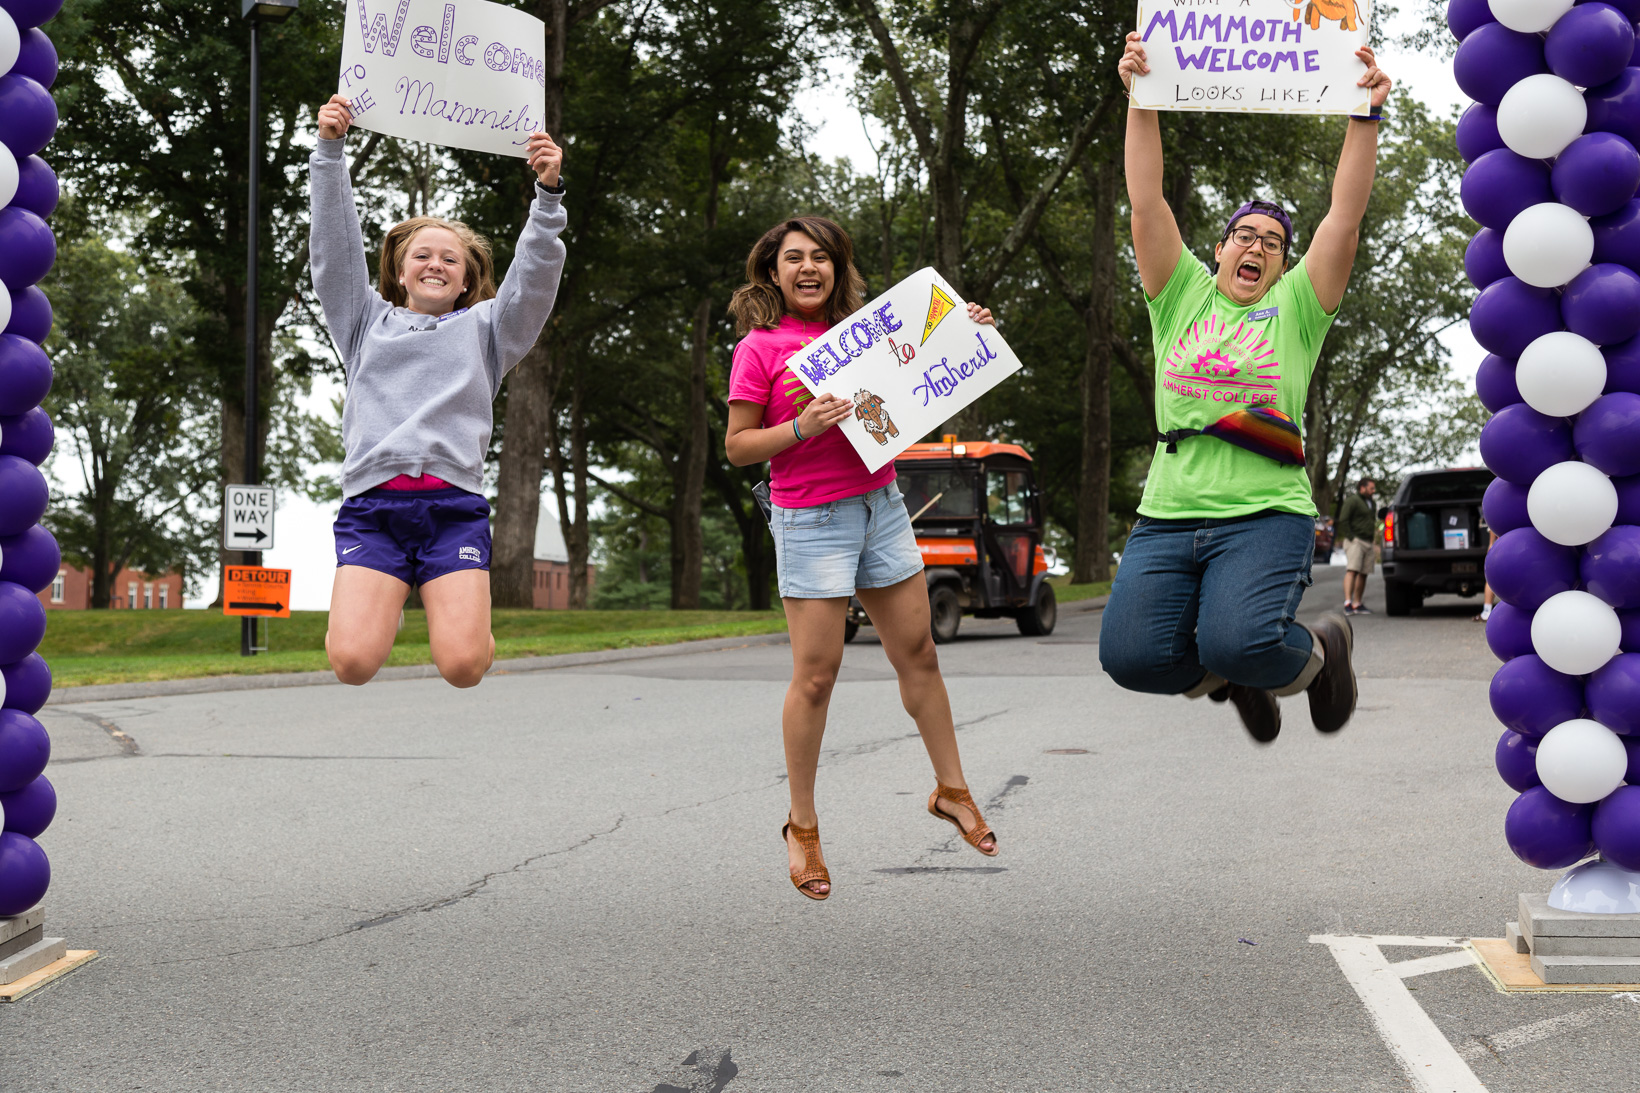 Students, holding signs and jumping in the air welcome the incoming class during Orientation.